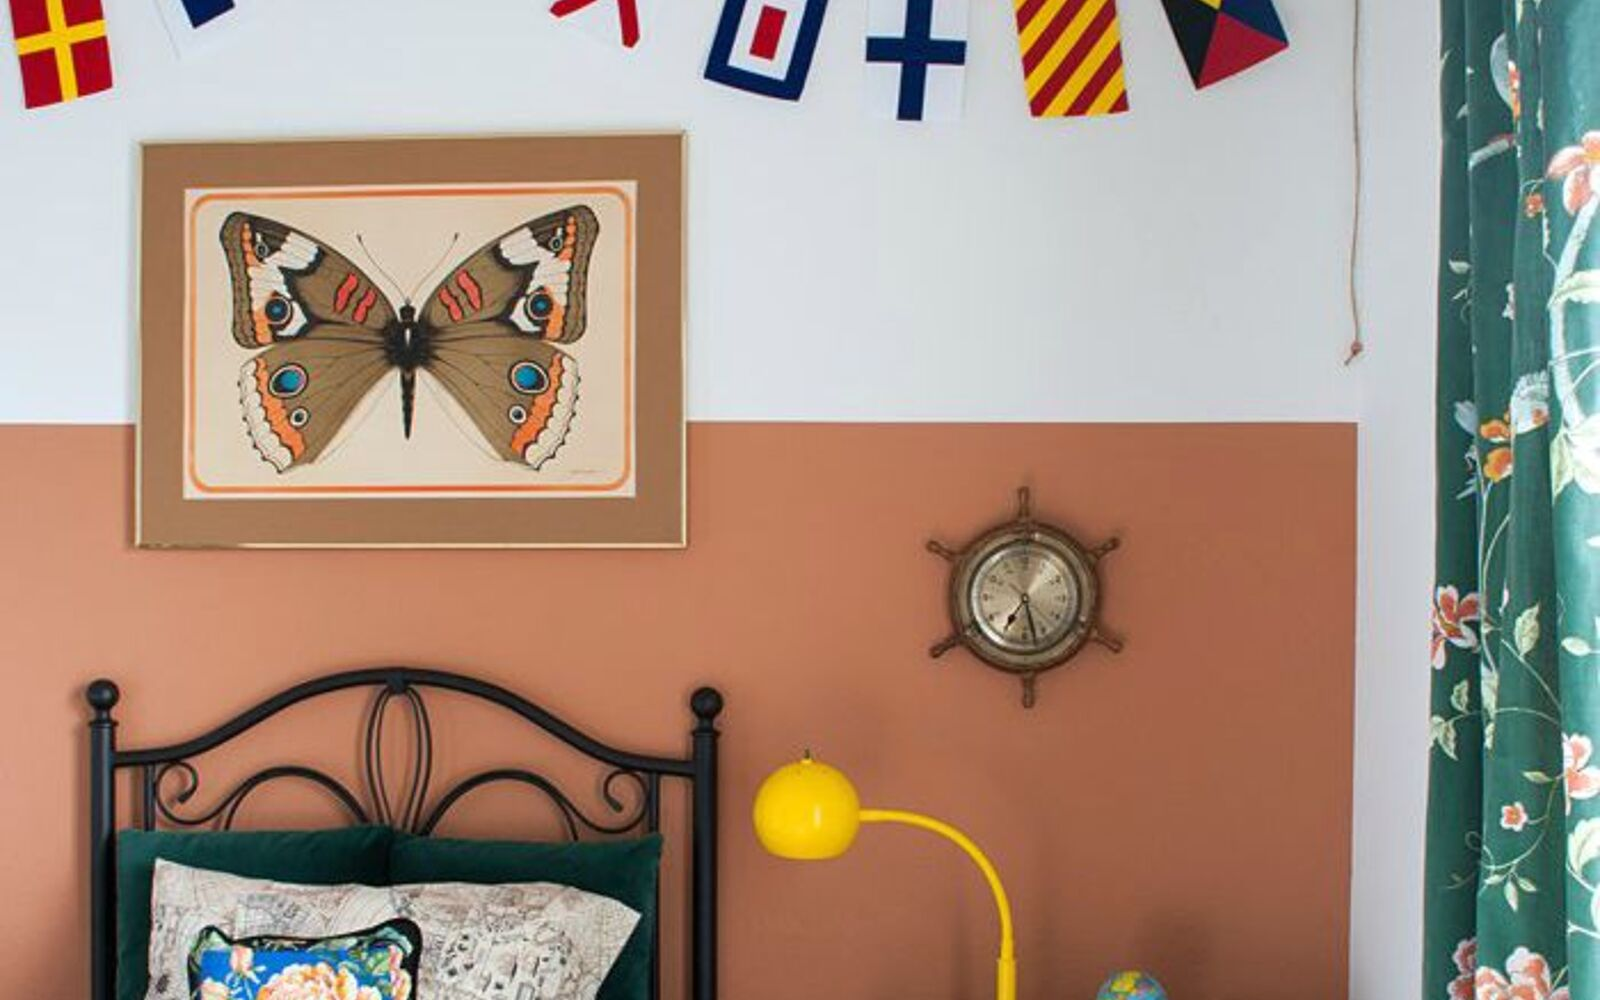 s 11 designer decor looks you can make on the cheap, crafts, home decor, Nautical Flag Banner Land of Nod